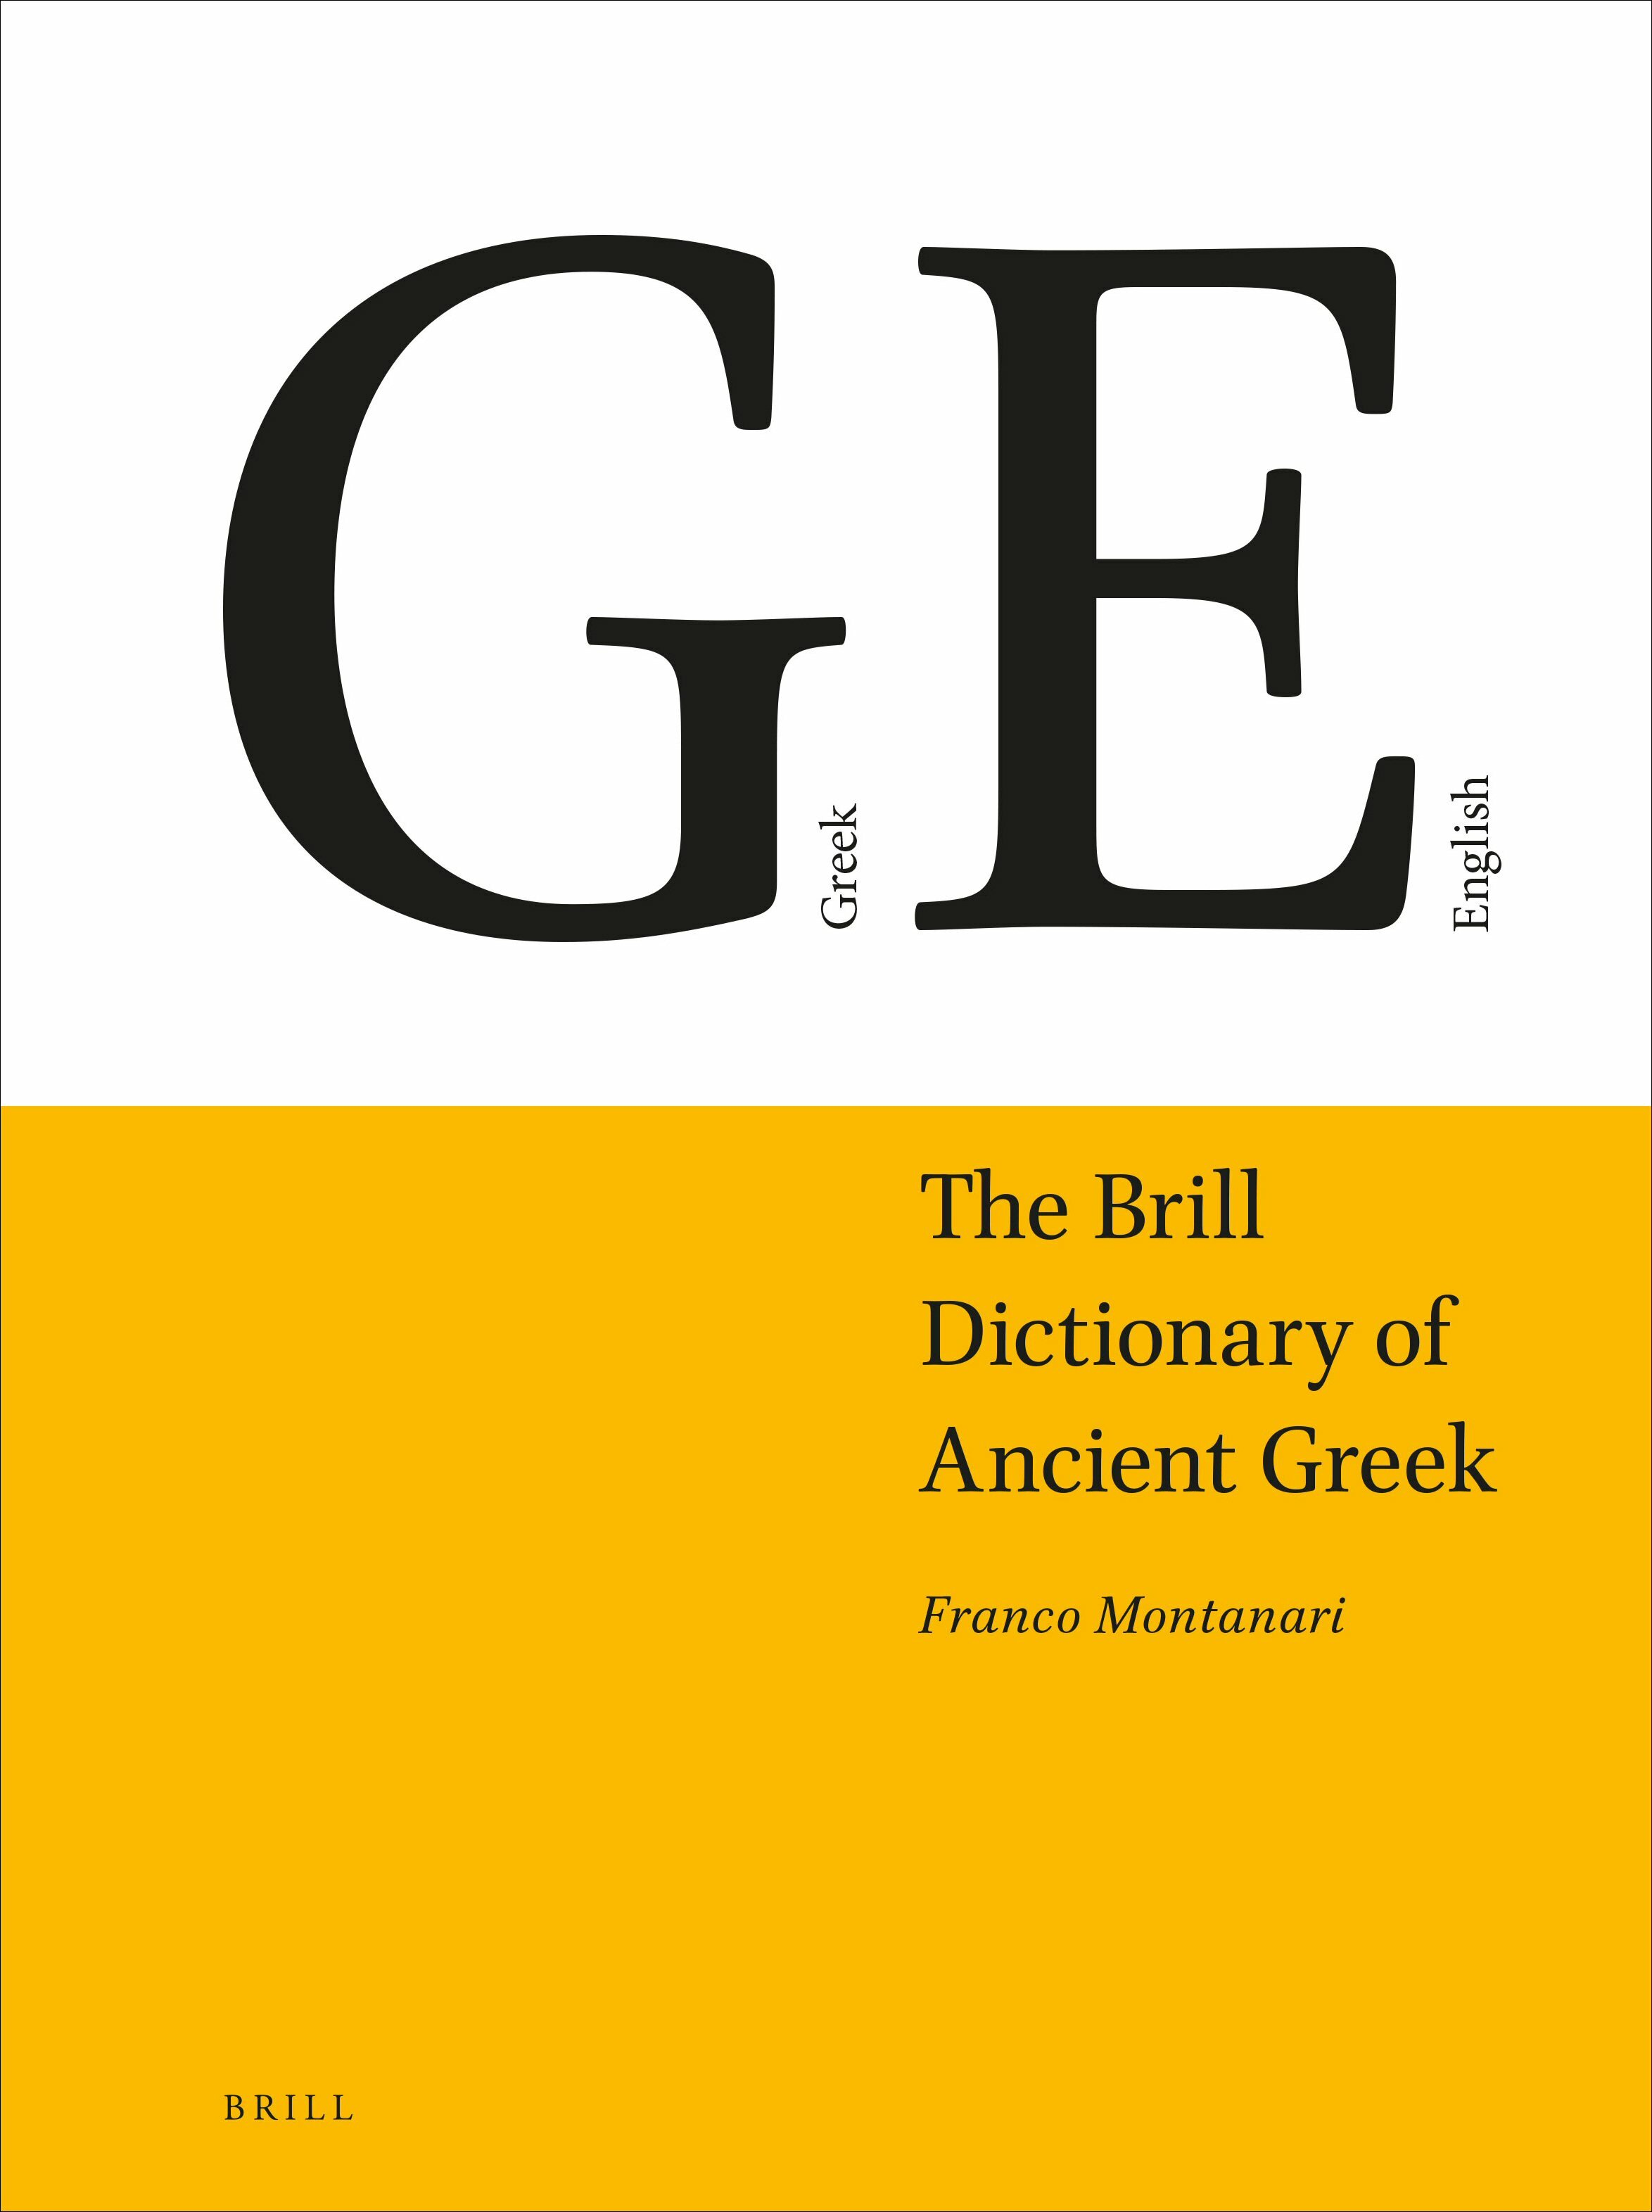 The Brill Dictionary of Ancient Greek (GE)